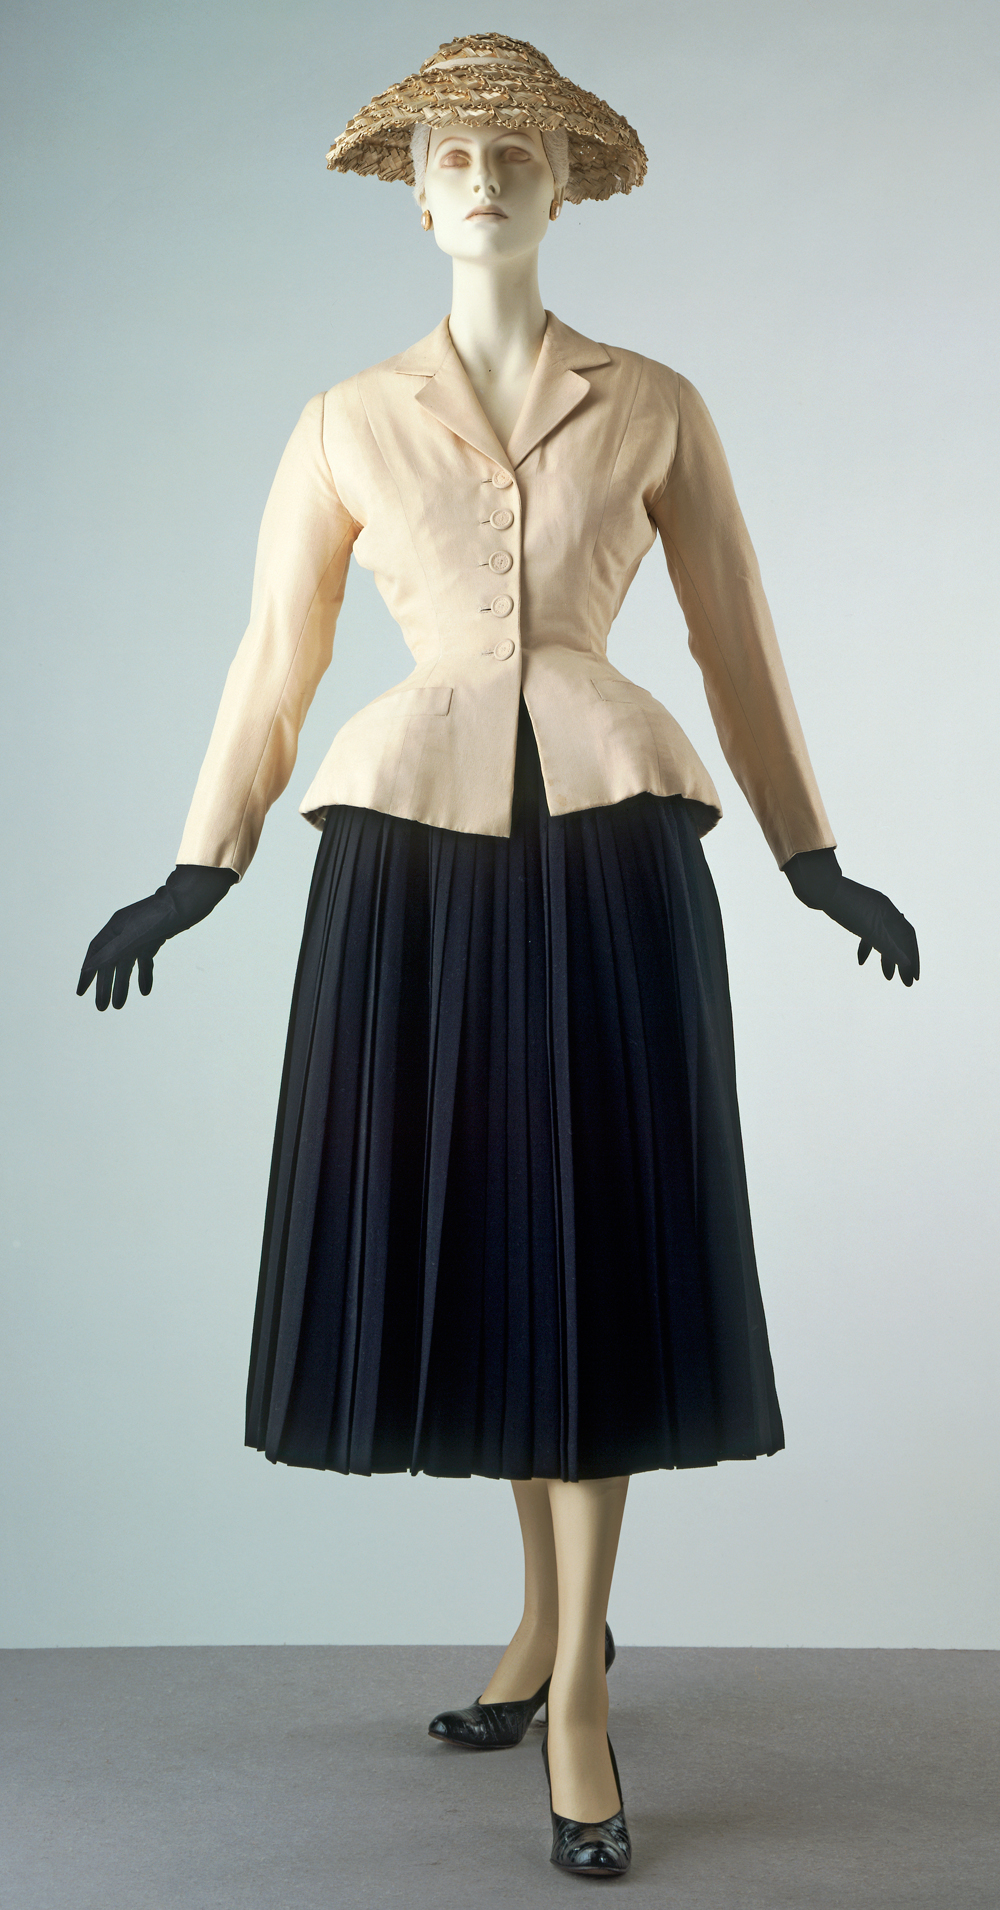 Bar Suit & Hat by Christian Dior, Spring/Summer 1947. Housed at the V&A Museum